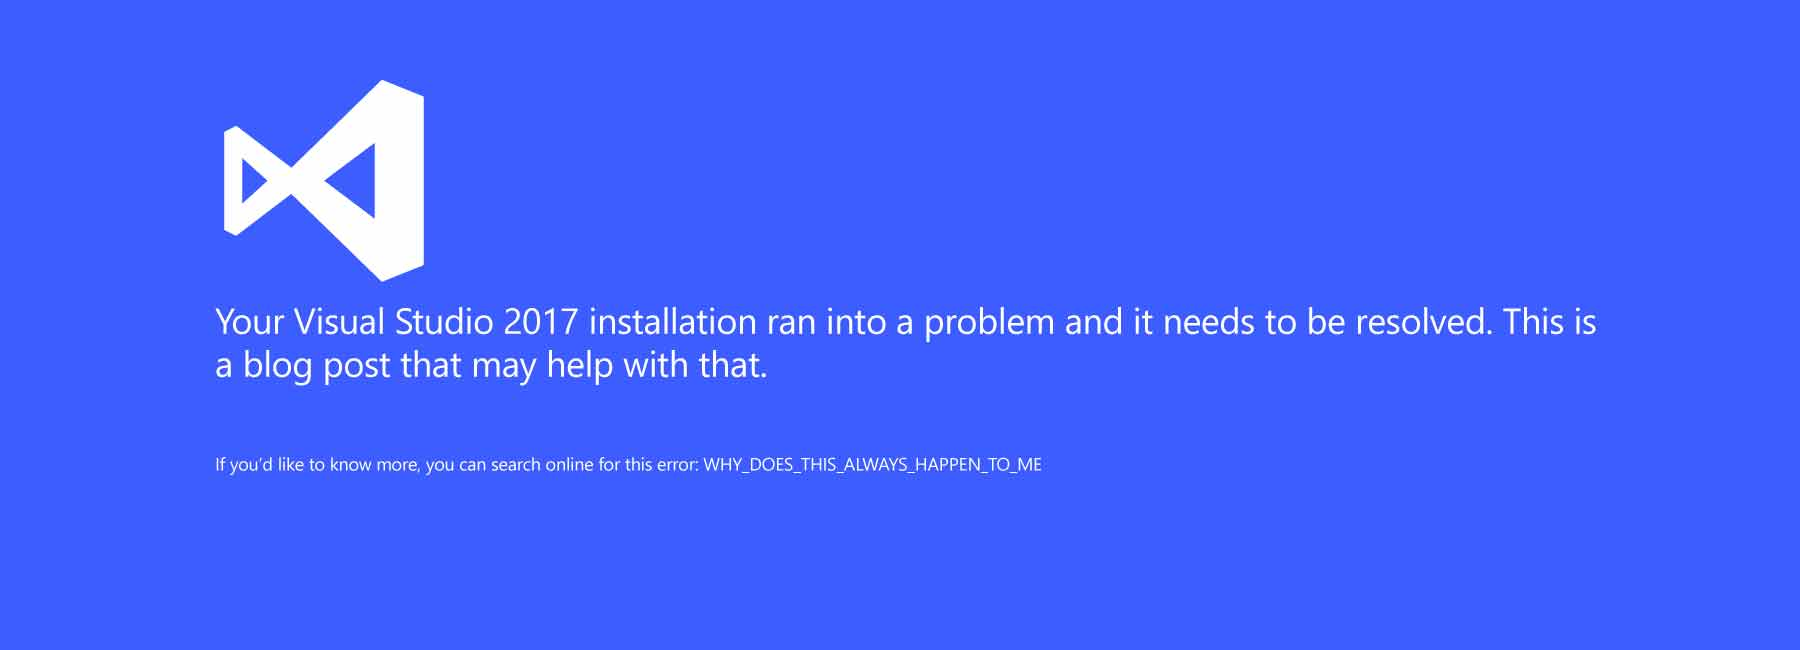 Resolving Installation Issues with Visual Studio 2017